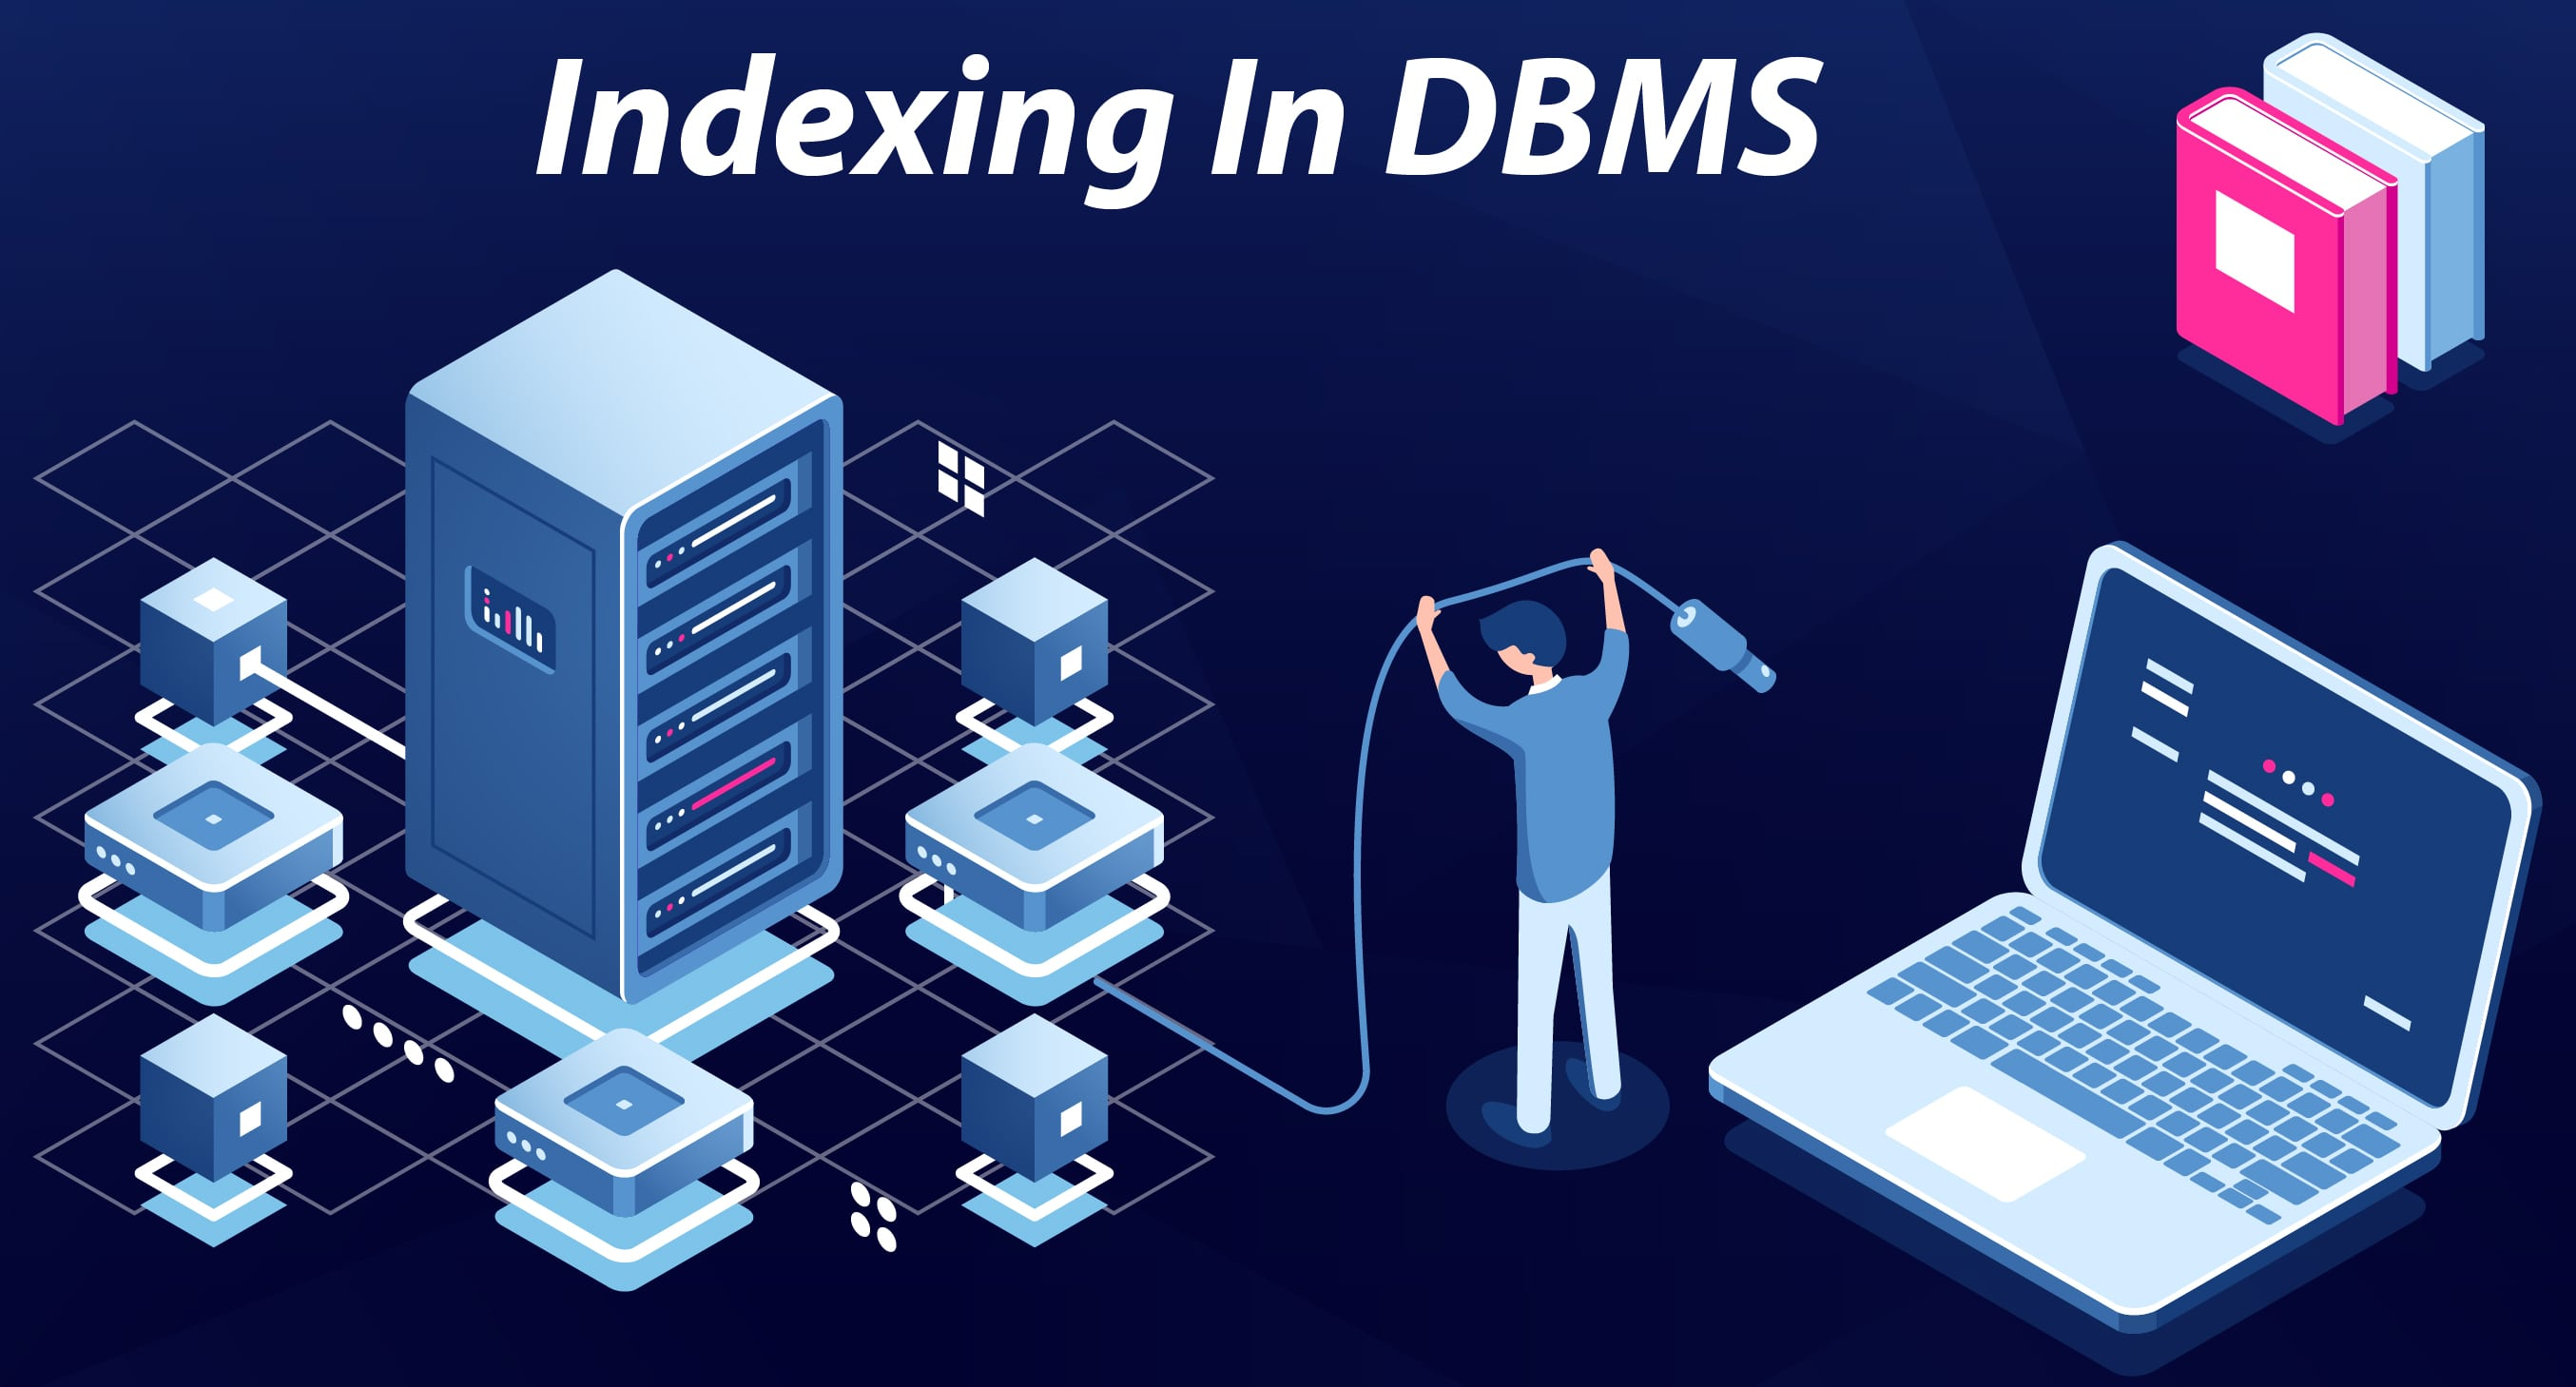 indexing in dbms